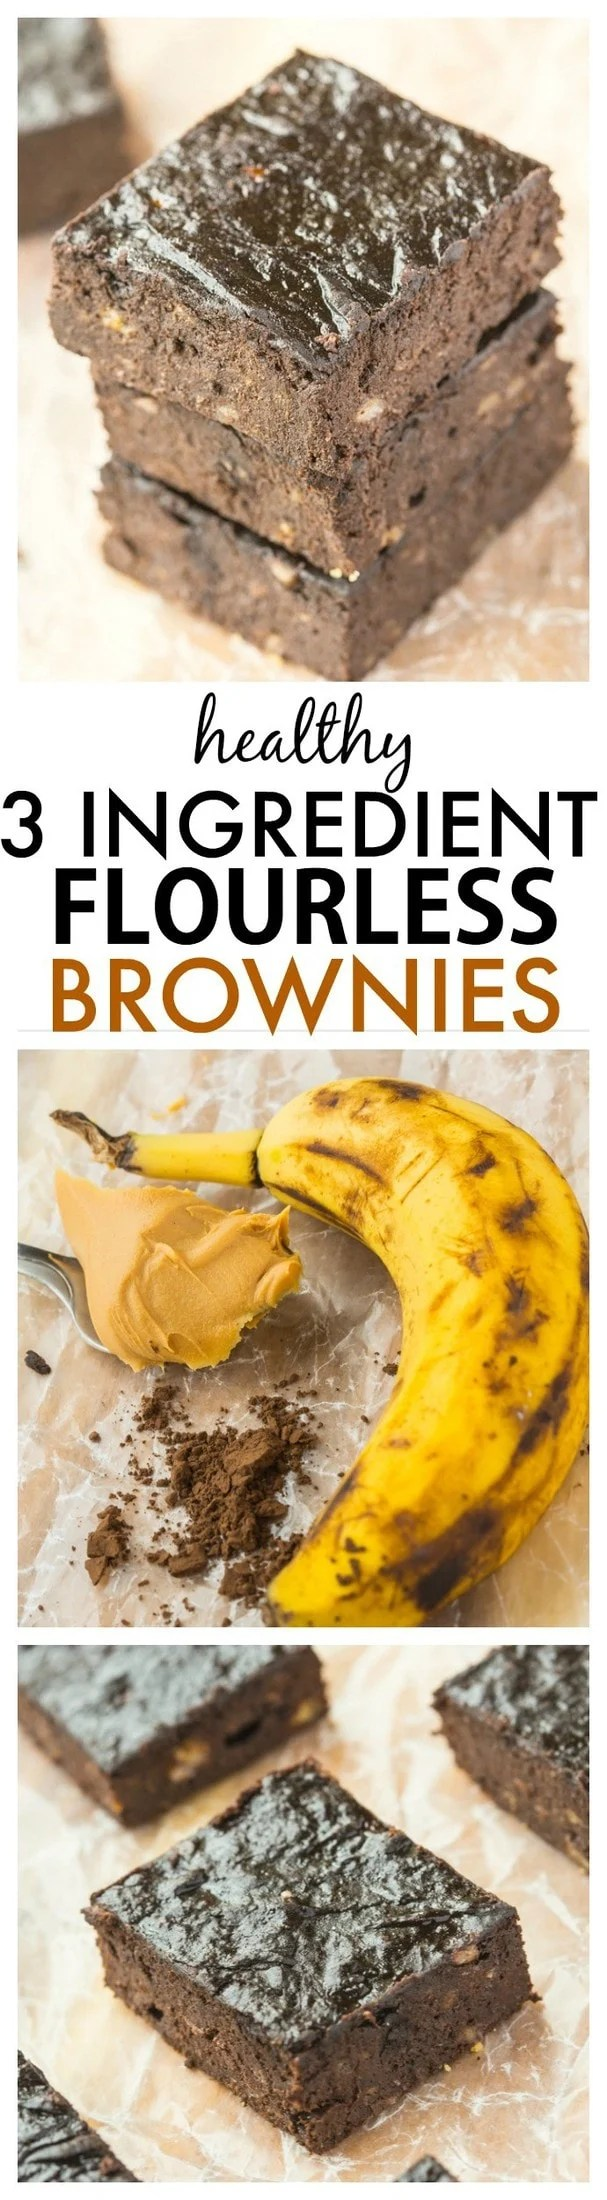 Healthy Three Ingredient Flourless Brownies- No butter, eggs or oil in this quick and easy recipe which is ready in minutes- Rich and fudgy yet so healthy too! {vegan, gluten free, paleo, dairy free} -thebigmansworld.com